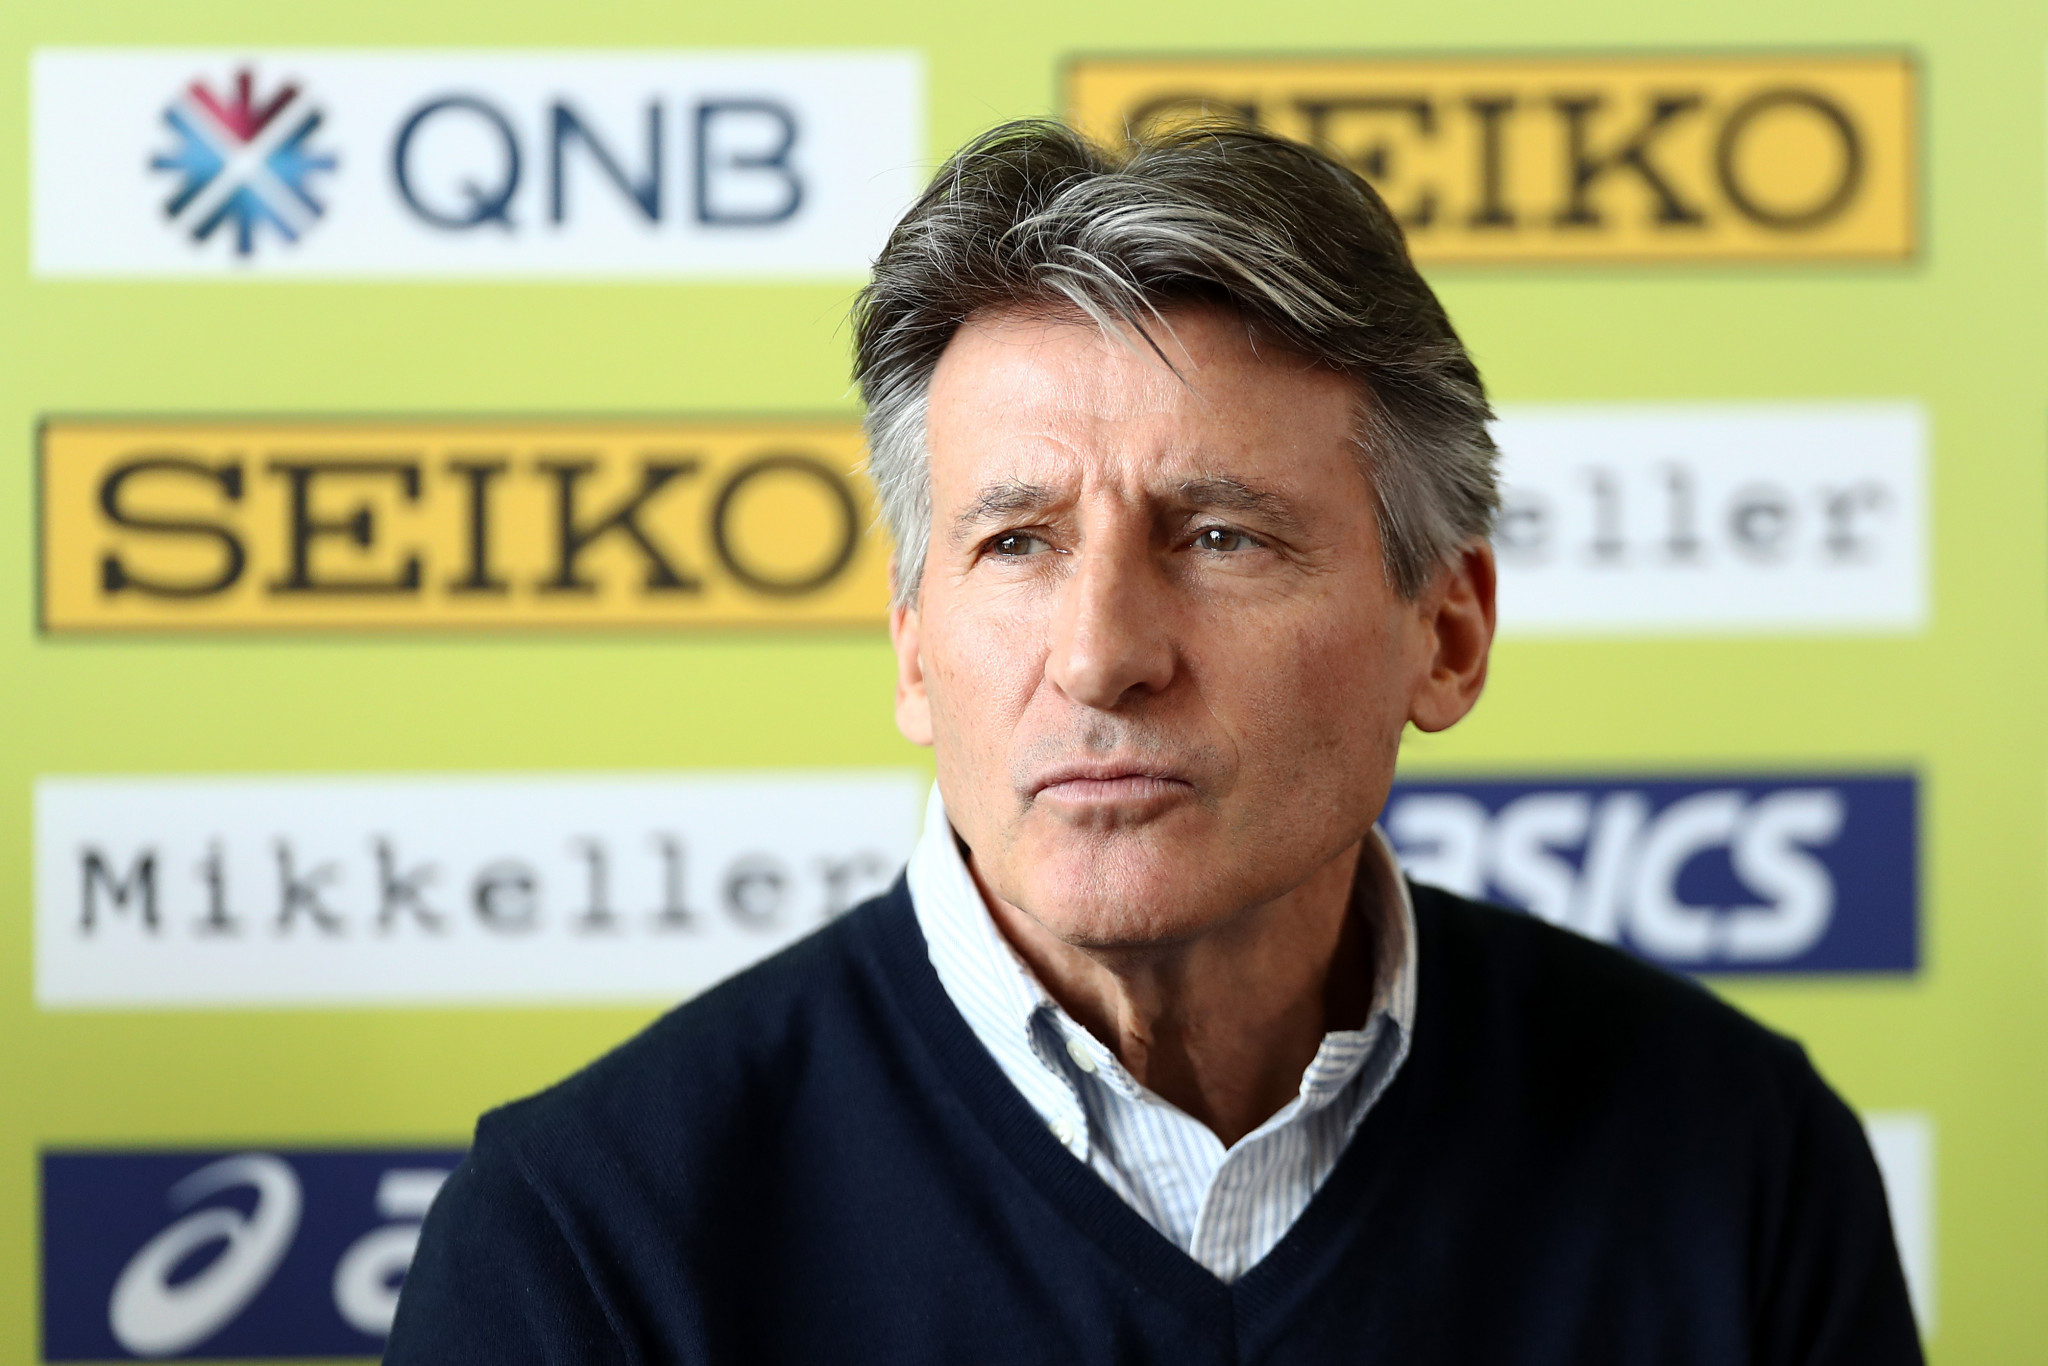 Athletics South Africa accuses IAAF and Sebastian Coe of breaching confidentiality rules with repeated statements on Semenya case